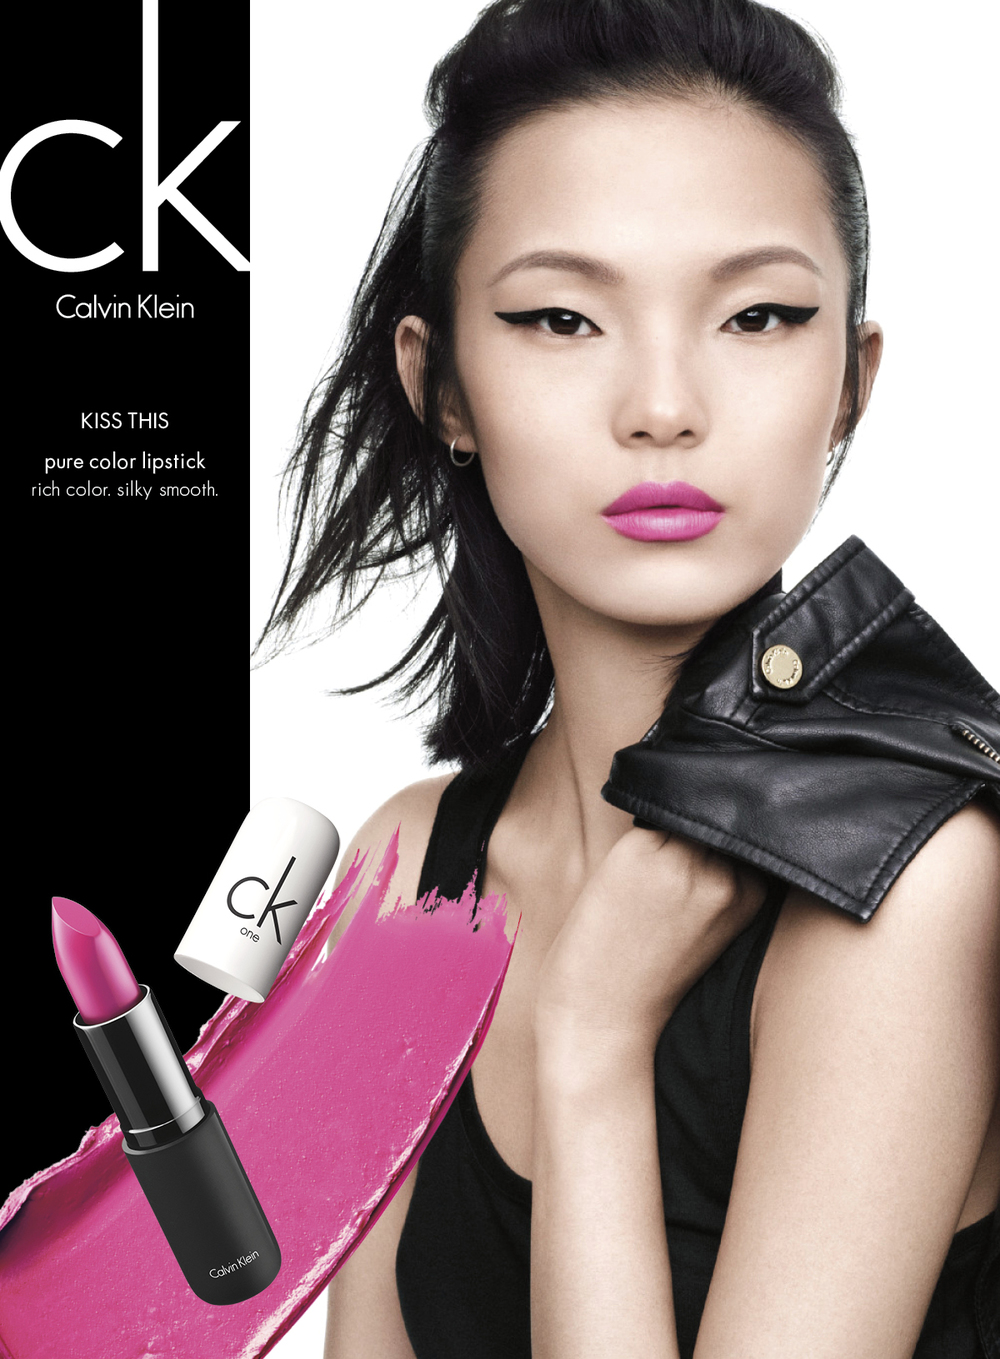 CK COLOR SINGLE PAGE 8%22X10.875%22_CHINA PURE COLOR LIPSTICK.jpg